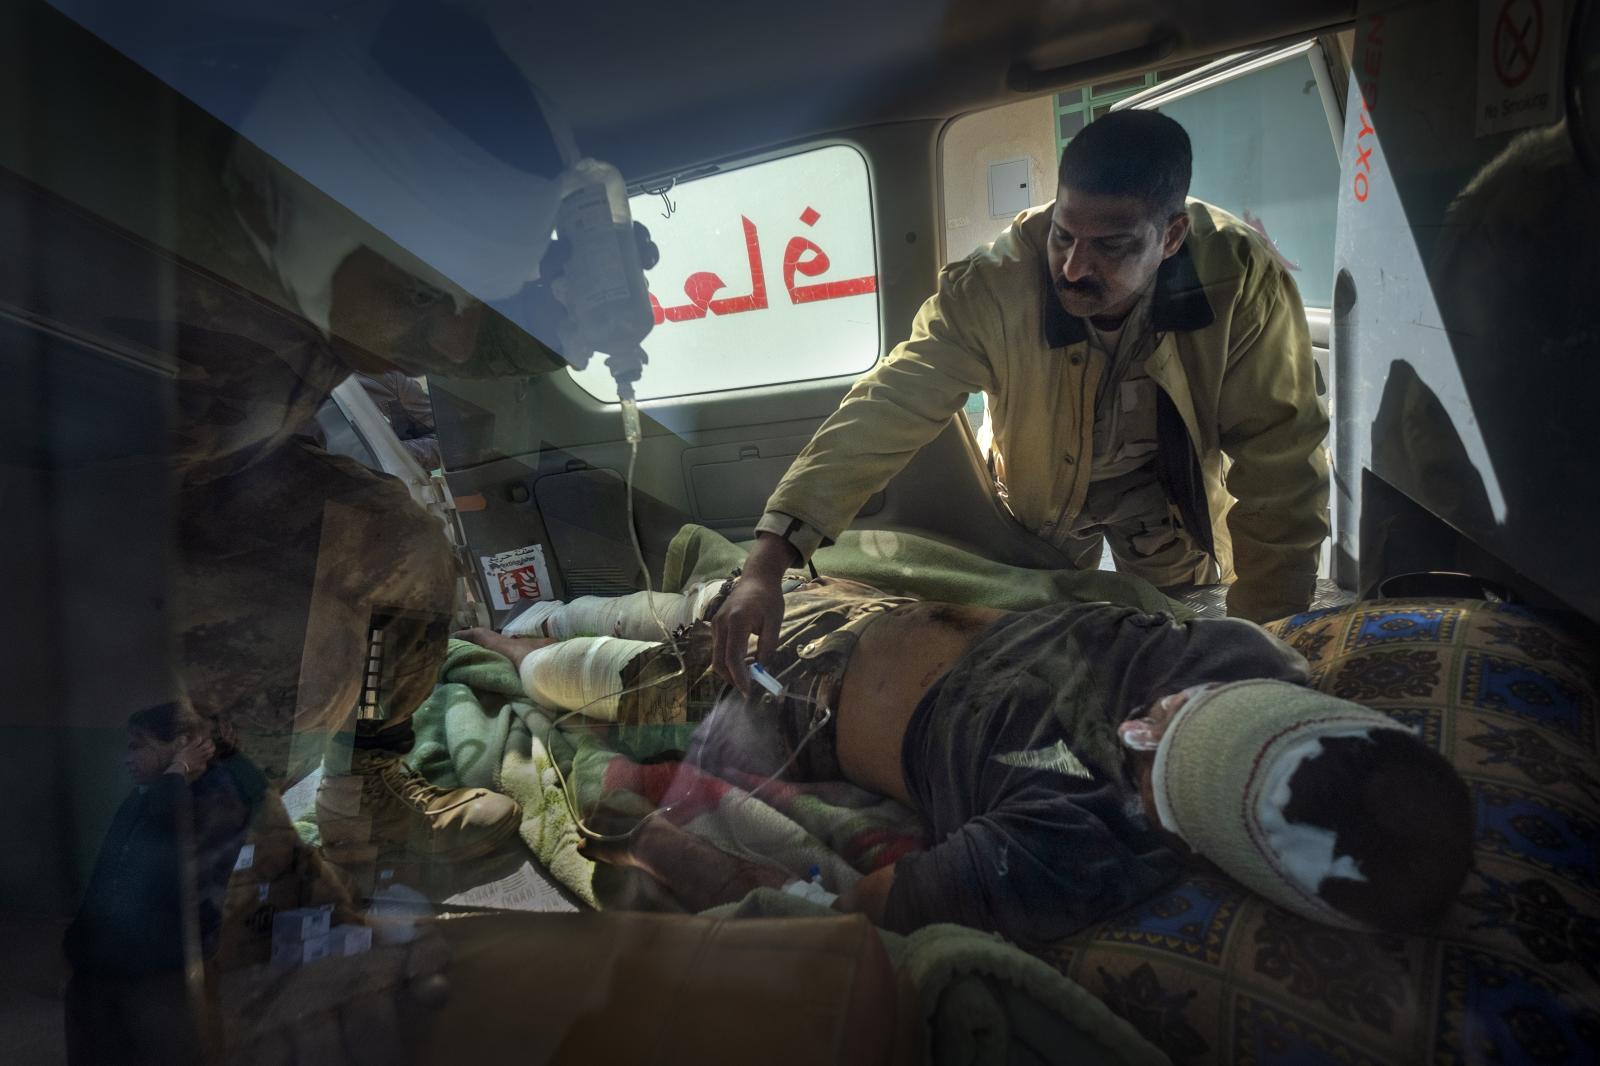 Ambulance with wounded in a field hospital. Once stabilized, the injured are transferred to a larger hospital. Southwestern front, battle of Mosul (Iraq, 2017)